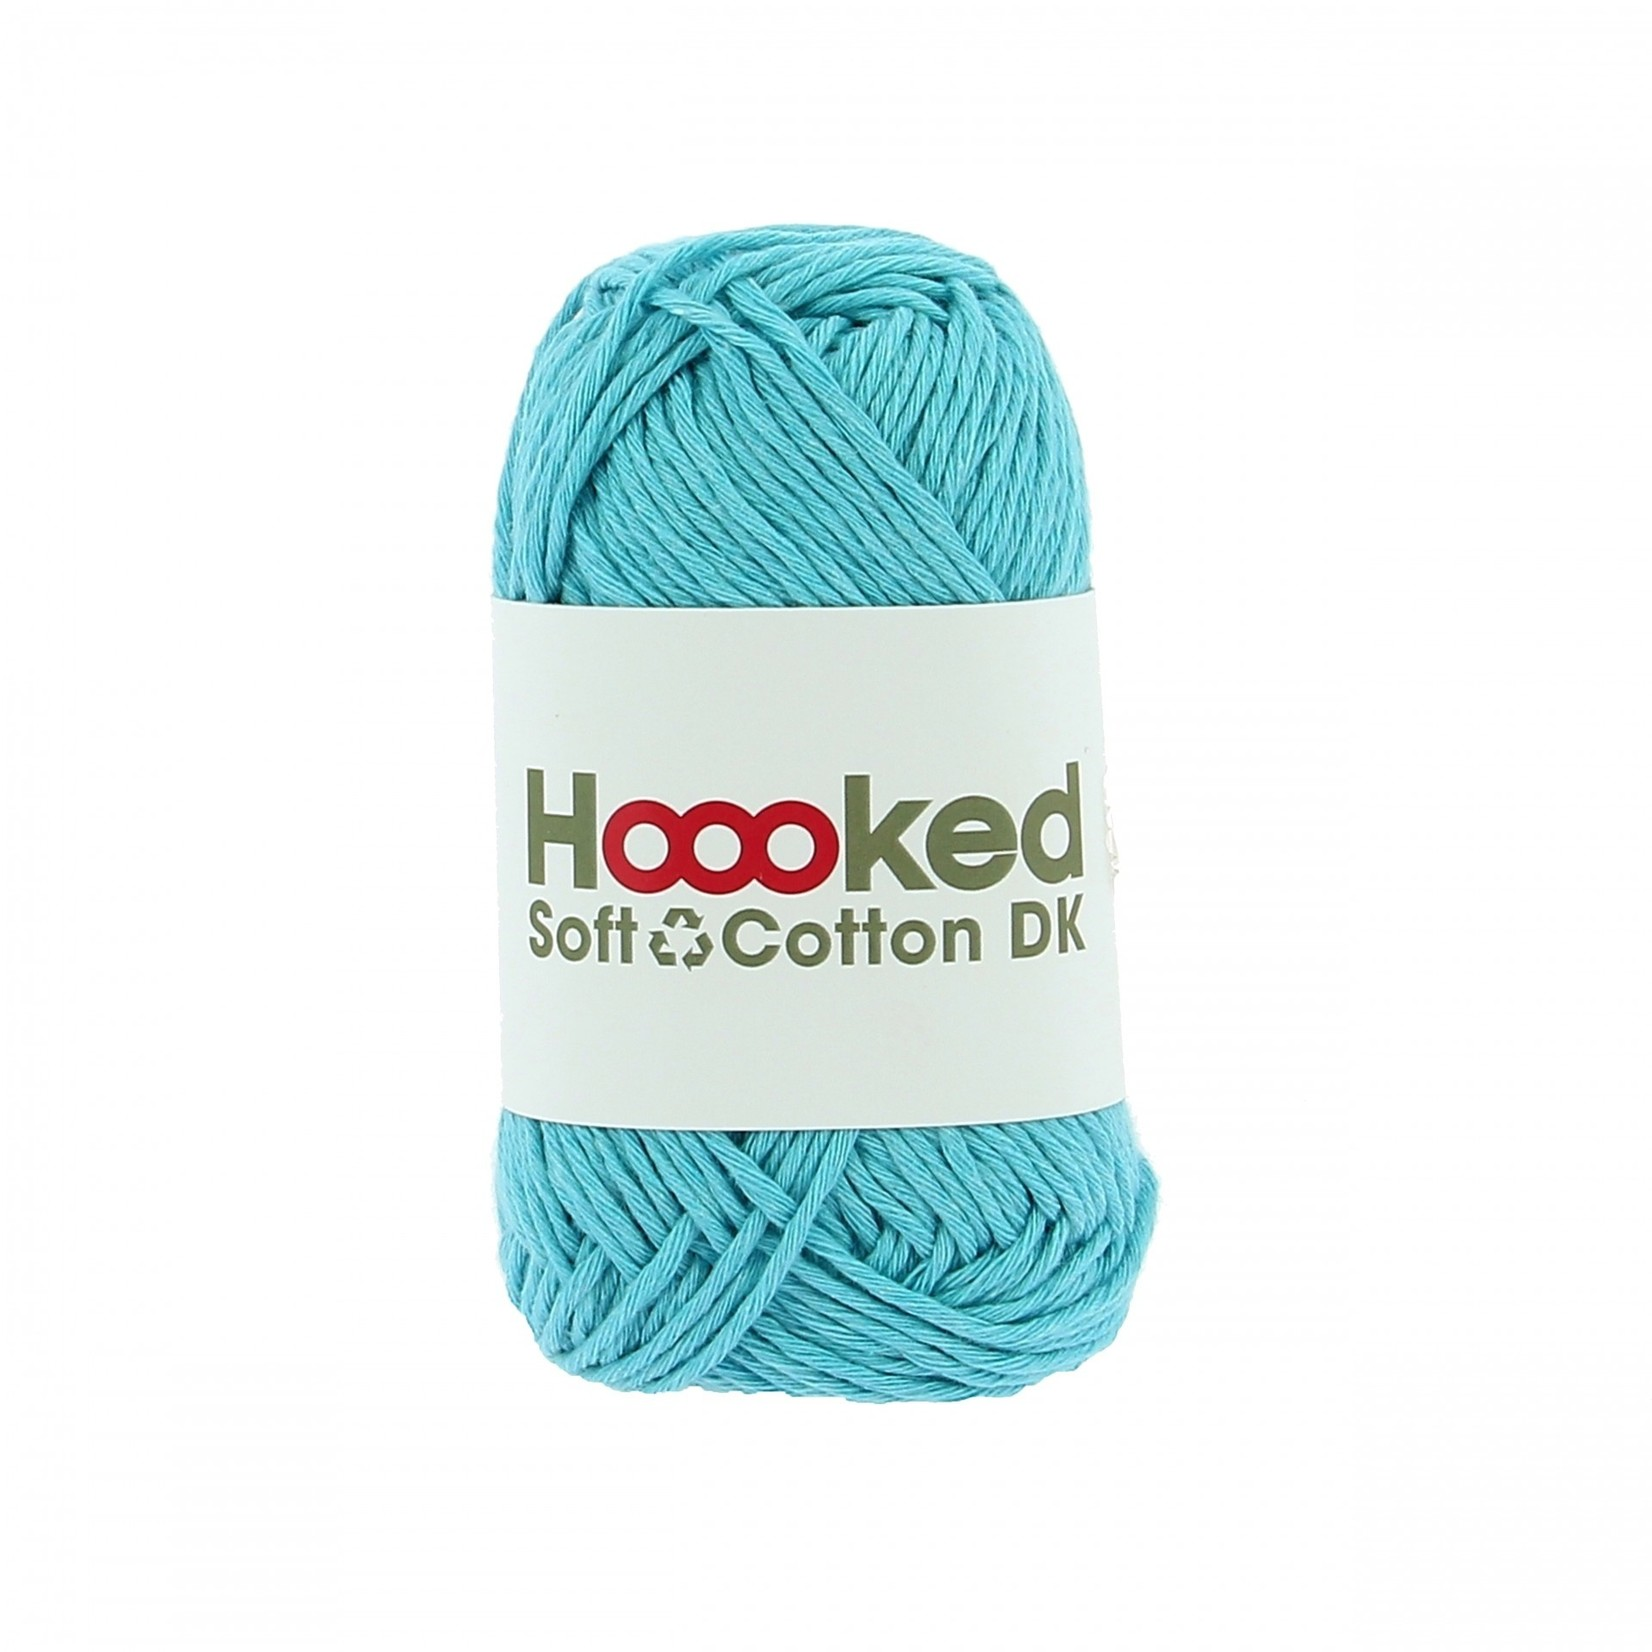 Hoooked Hoooked Soft Cotton DK Sydney Sea bundel 5 x 50 gr. / 85 m.